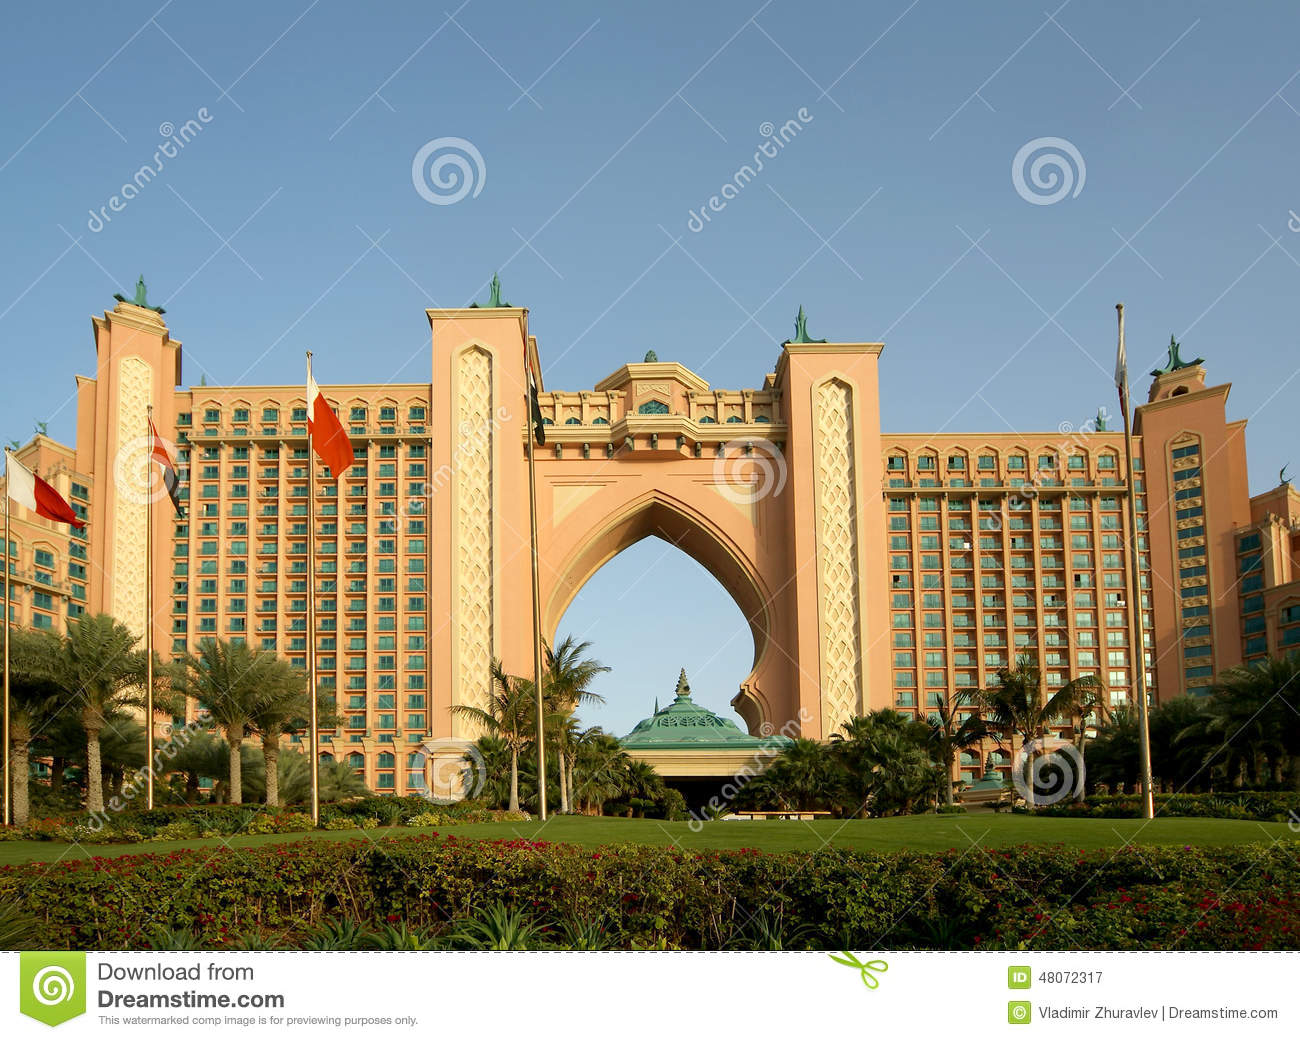 Atlantis hotel palm jumeirah dubai united arab emirates for Hotel dubai palm